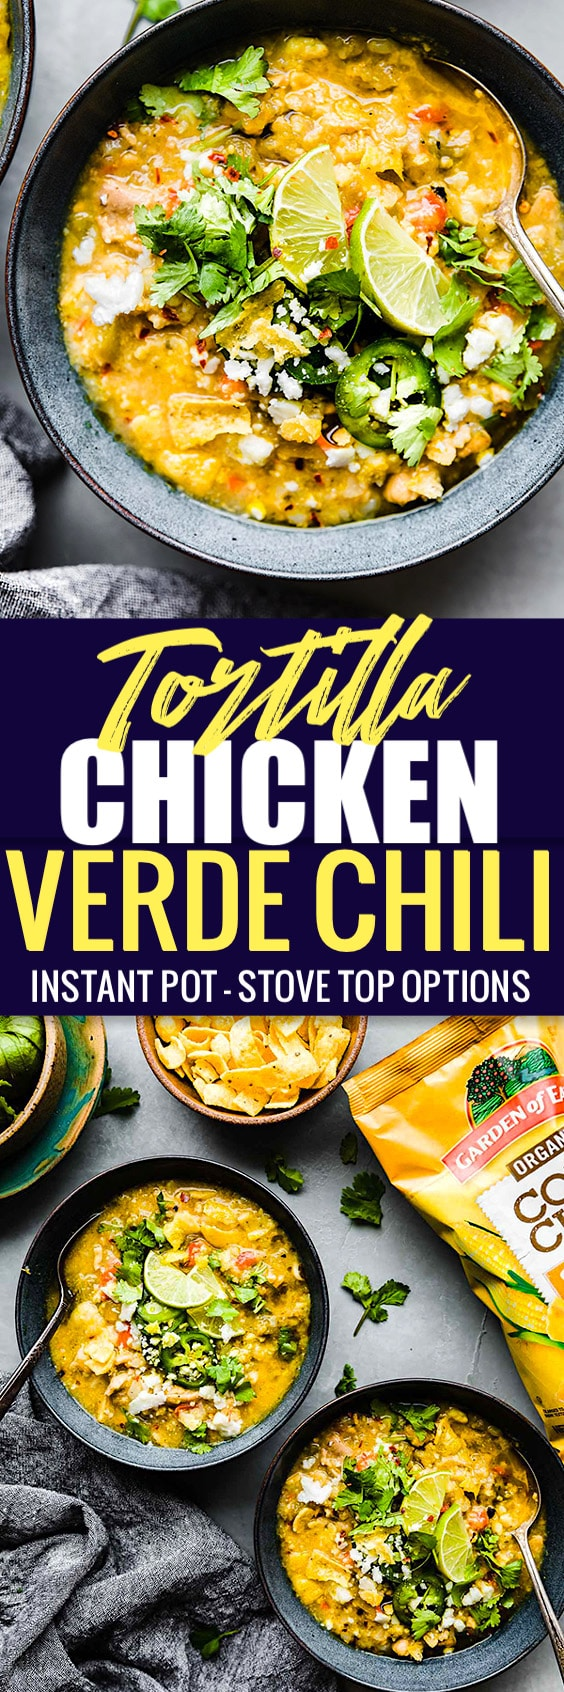 This Spicy Tortilla Chicken Verde Chili is made easy in the instant pot or stove top! A delicious chicken chili packed with wholesome gluten free ingredients and a crunchy tortilla chip topping! You'll love this healthier twist on a classic Mexican inspired Chili! No beans required. #instantpot #chili #glutenfree #healthy